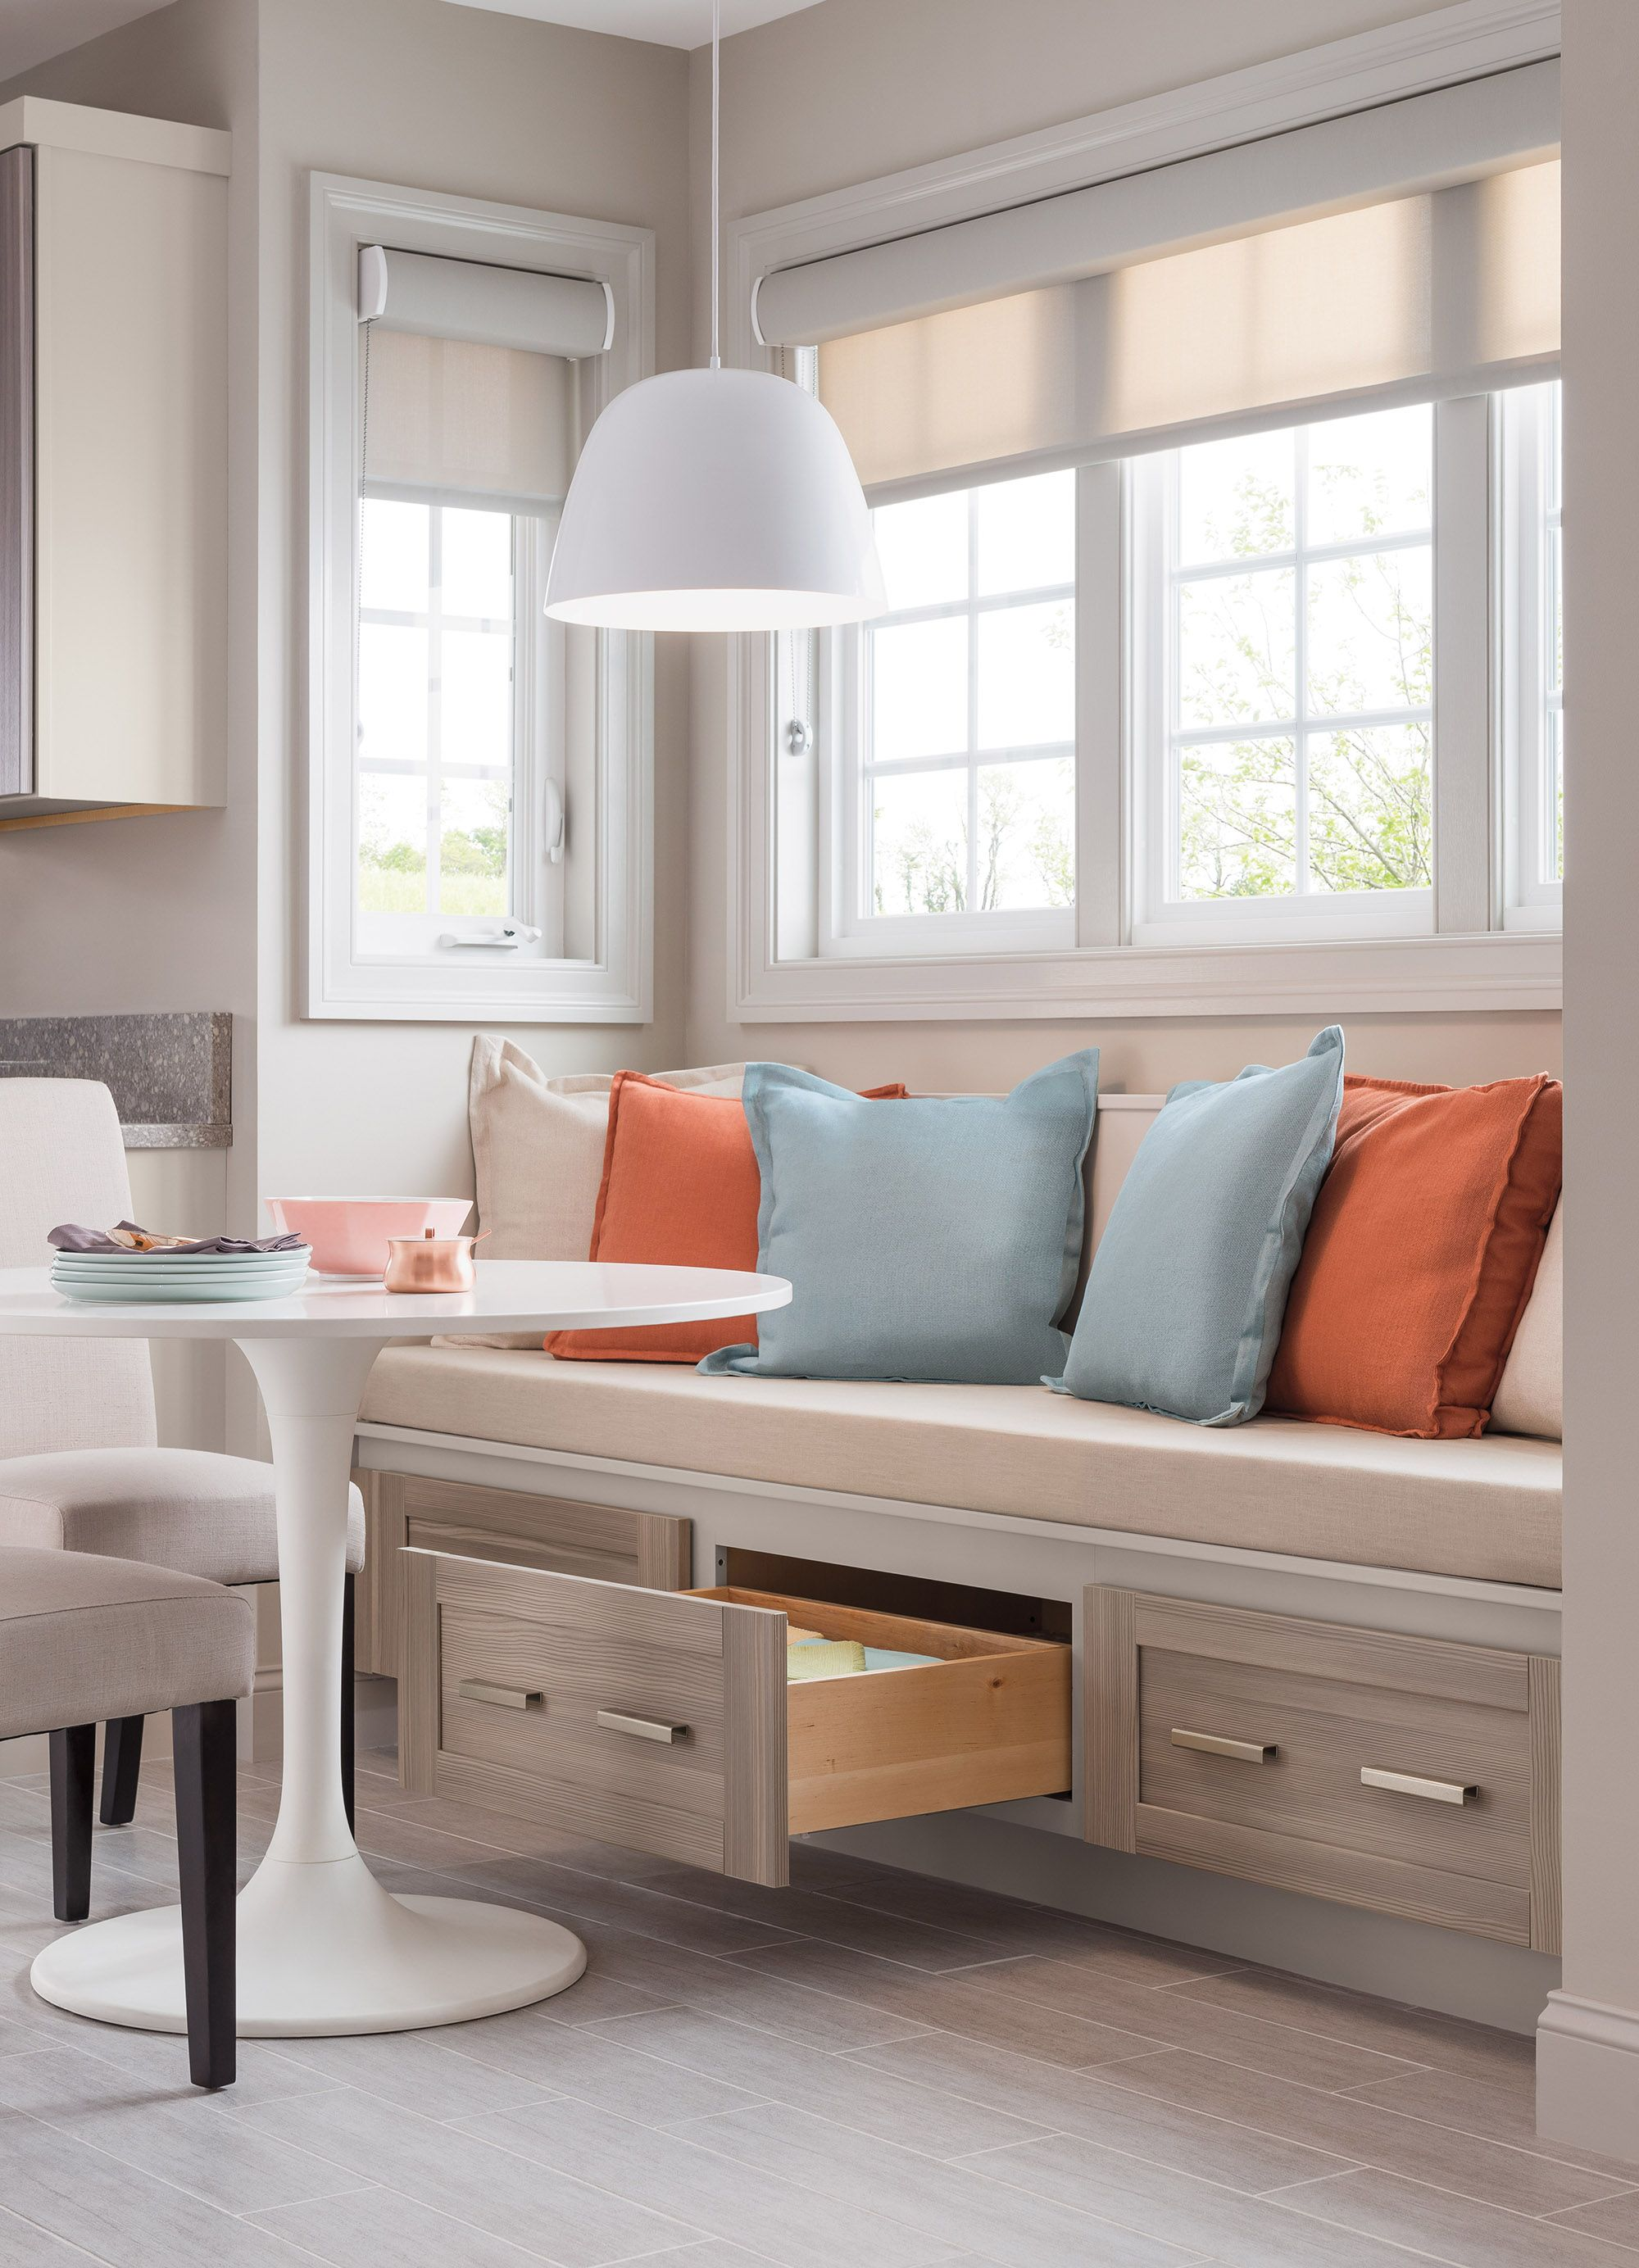 Double Up With Storage And Seating Dining Room Small Banquette Seating In Kitchen Home